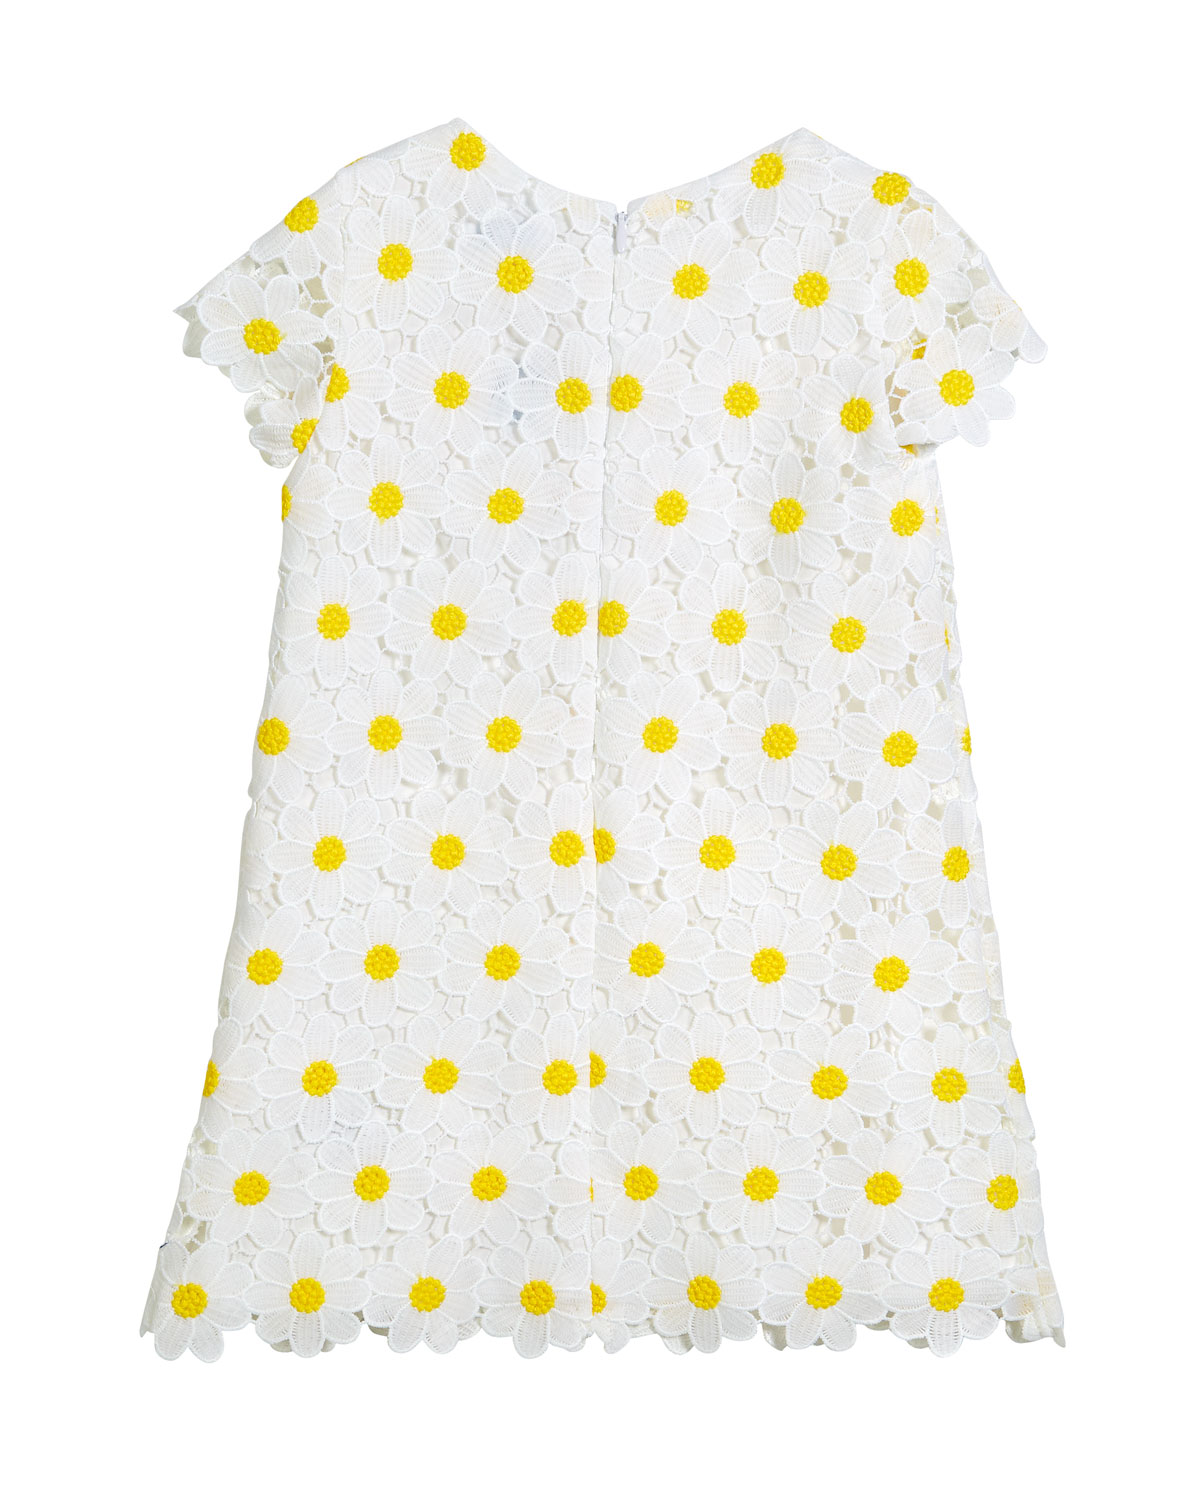 10e284865 Mayoral Daisy Lace Embroidered Dress, Size 3-7 | Neiman Marcus